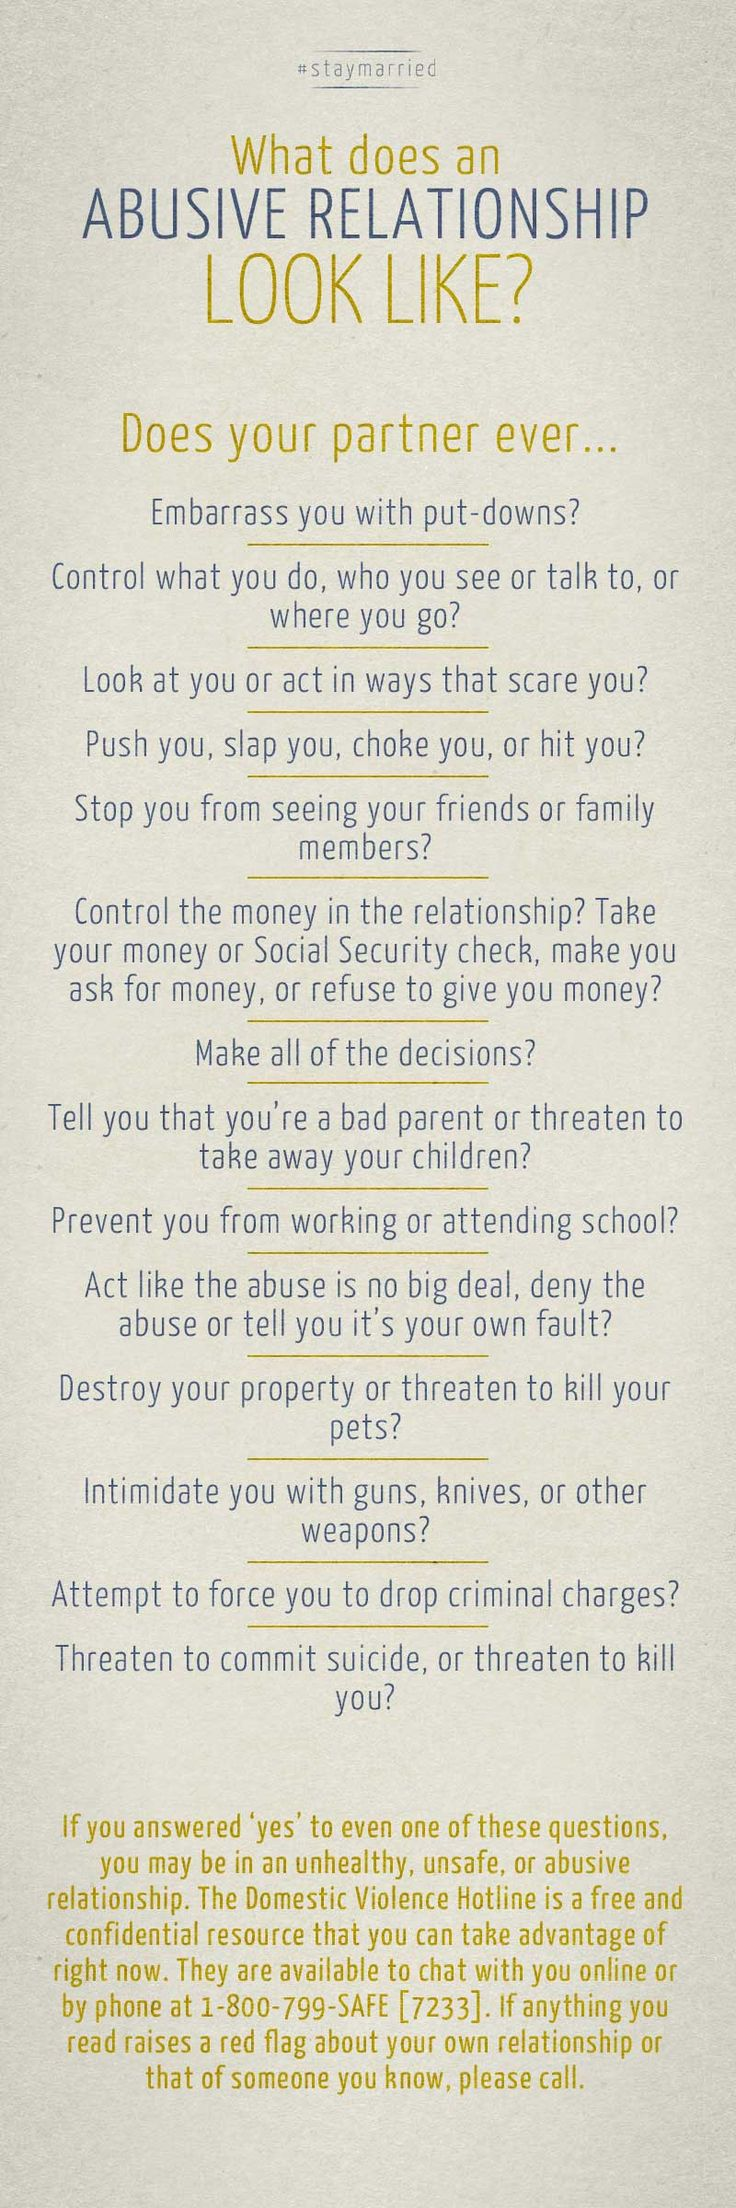 What does an abusive relationship look like? - You might not need this, but someone who follows your PINS probably does. #staymarried